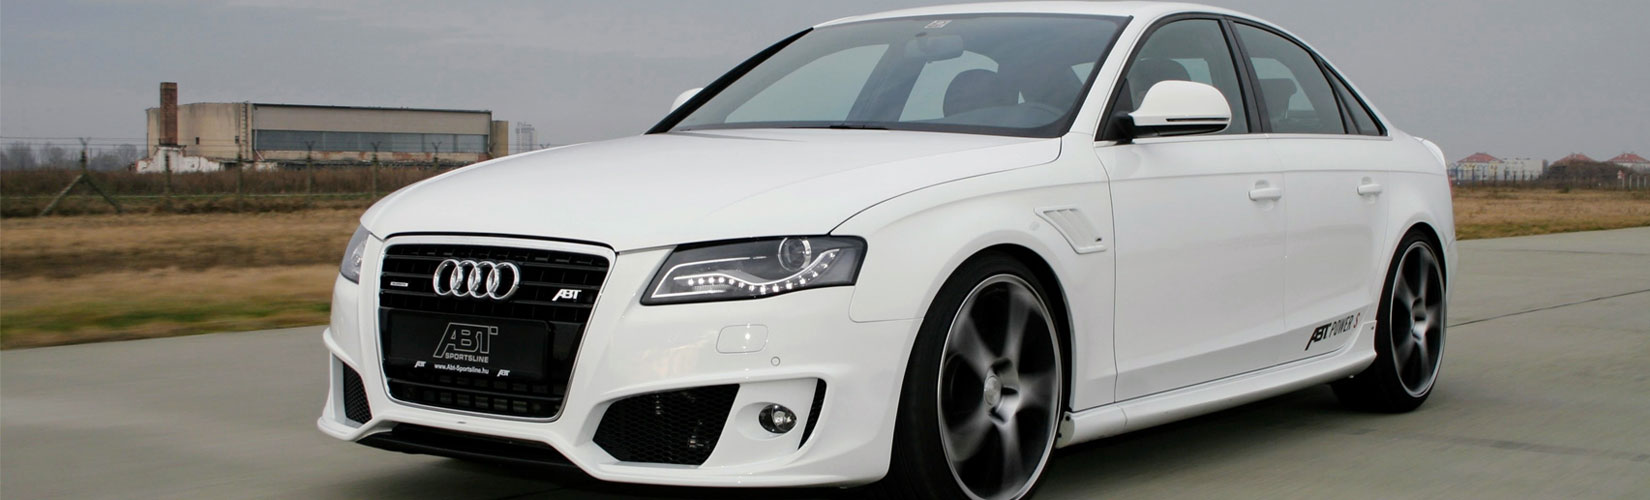 Our Services Supreme Motor Works Motor Mechanic Broadmeadows Euro